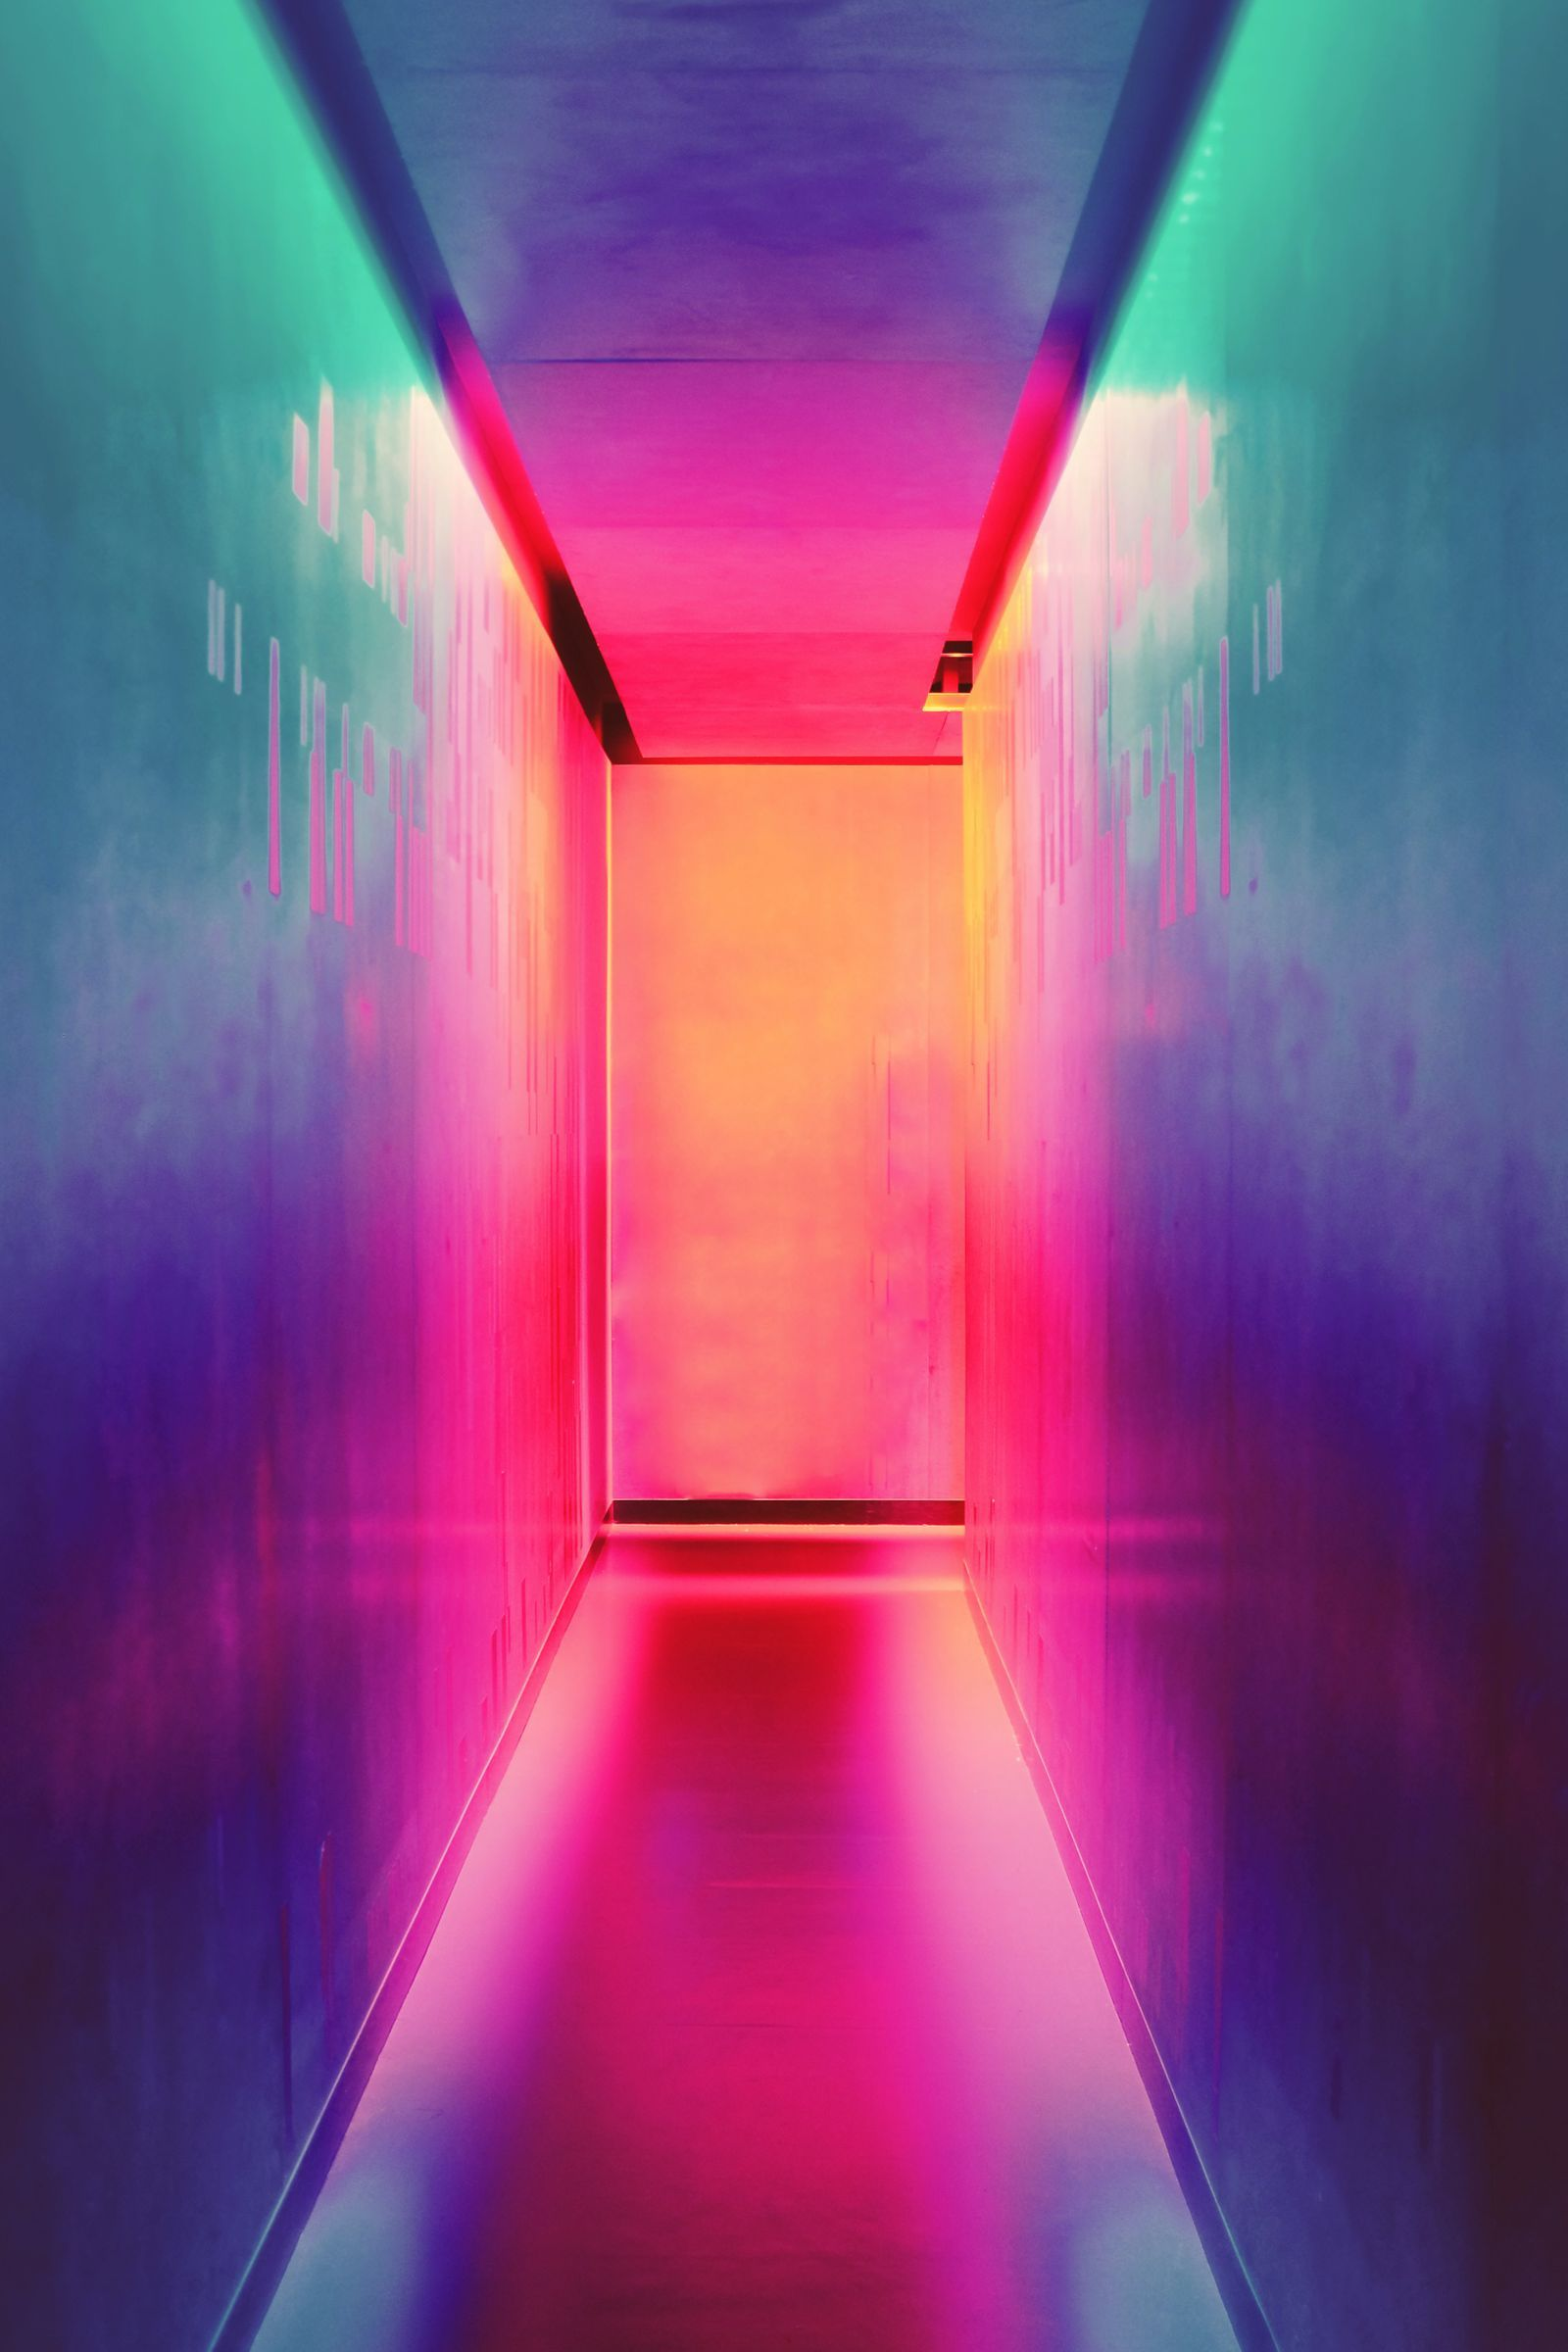 A colourful hallway. Photo by Efe Kurnaz on Unsplash